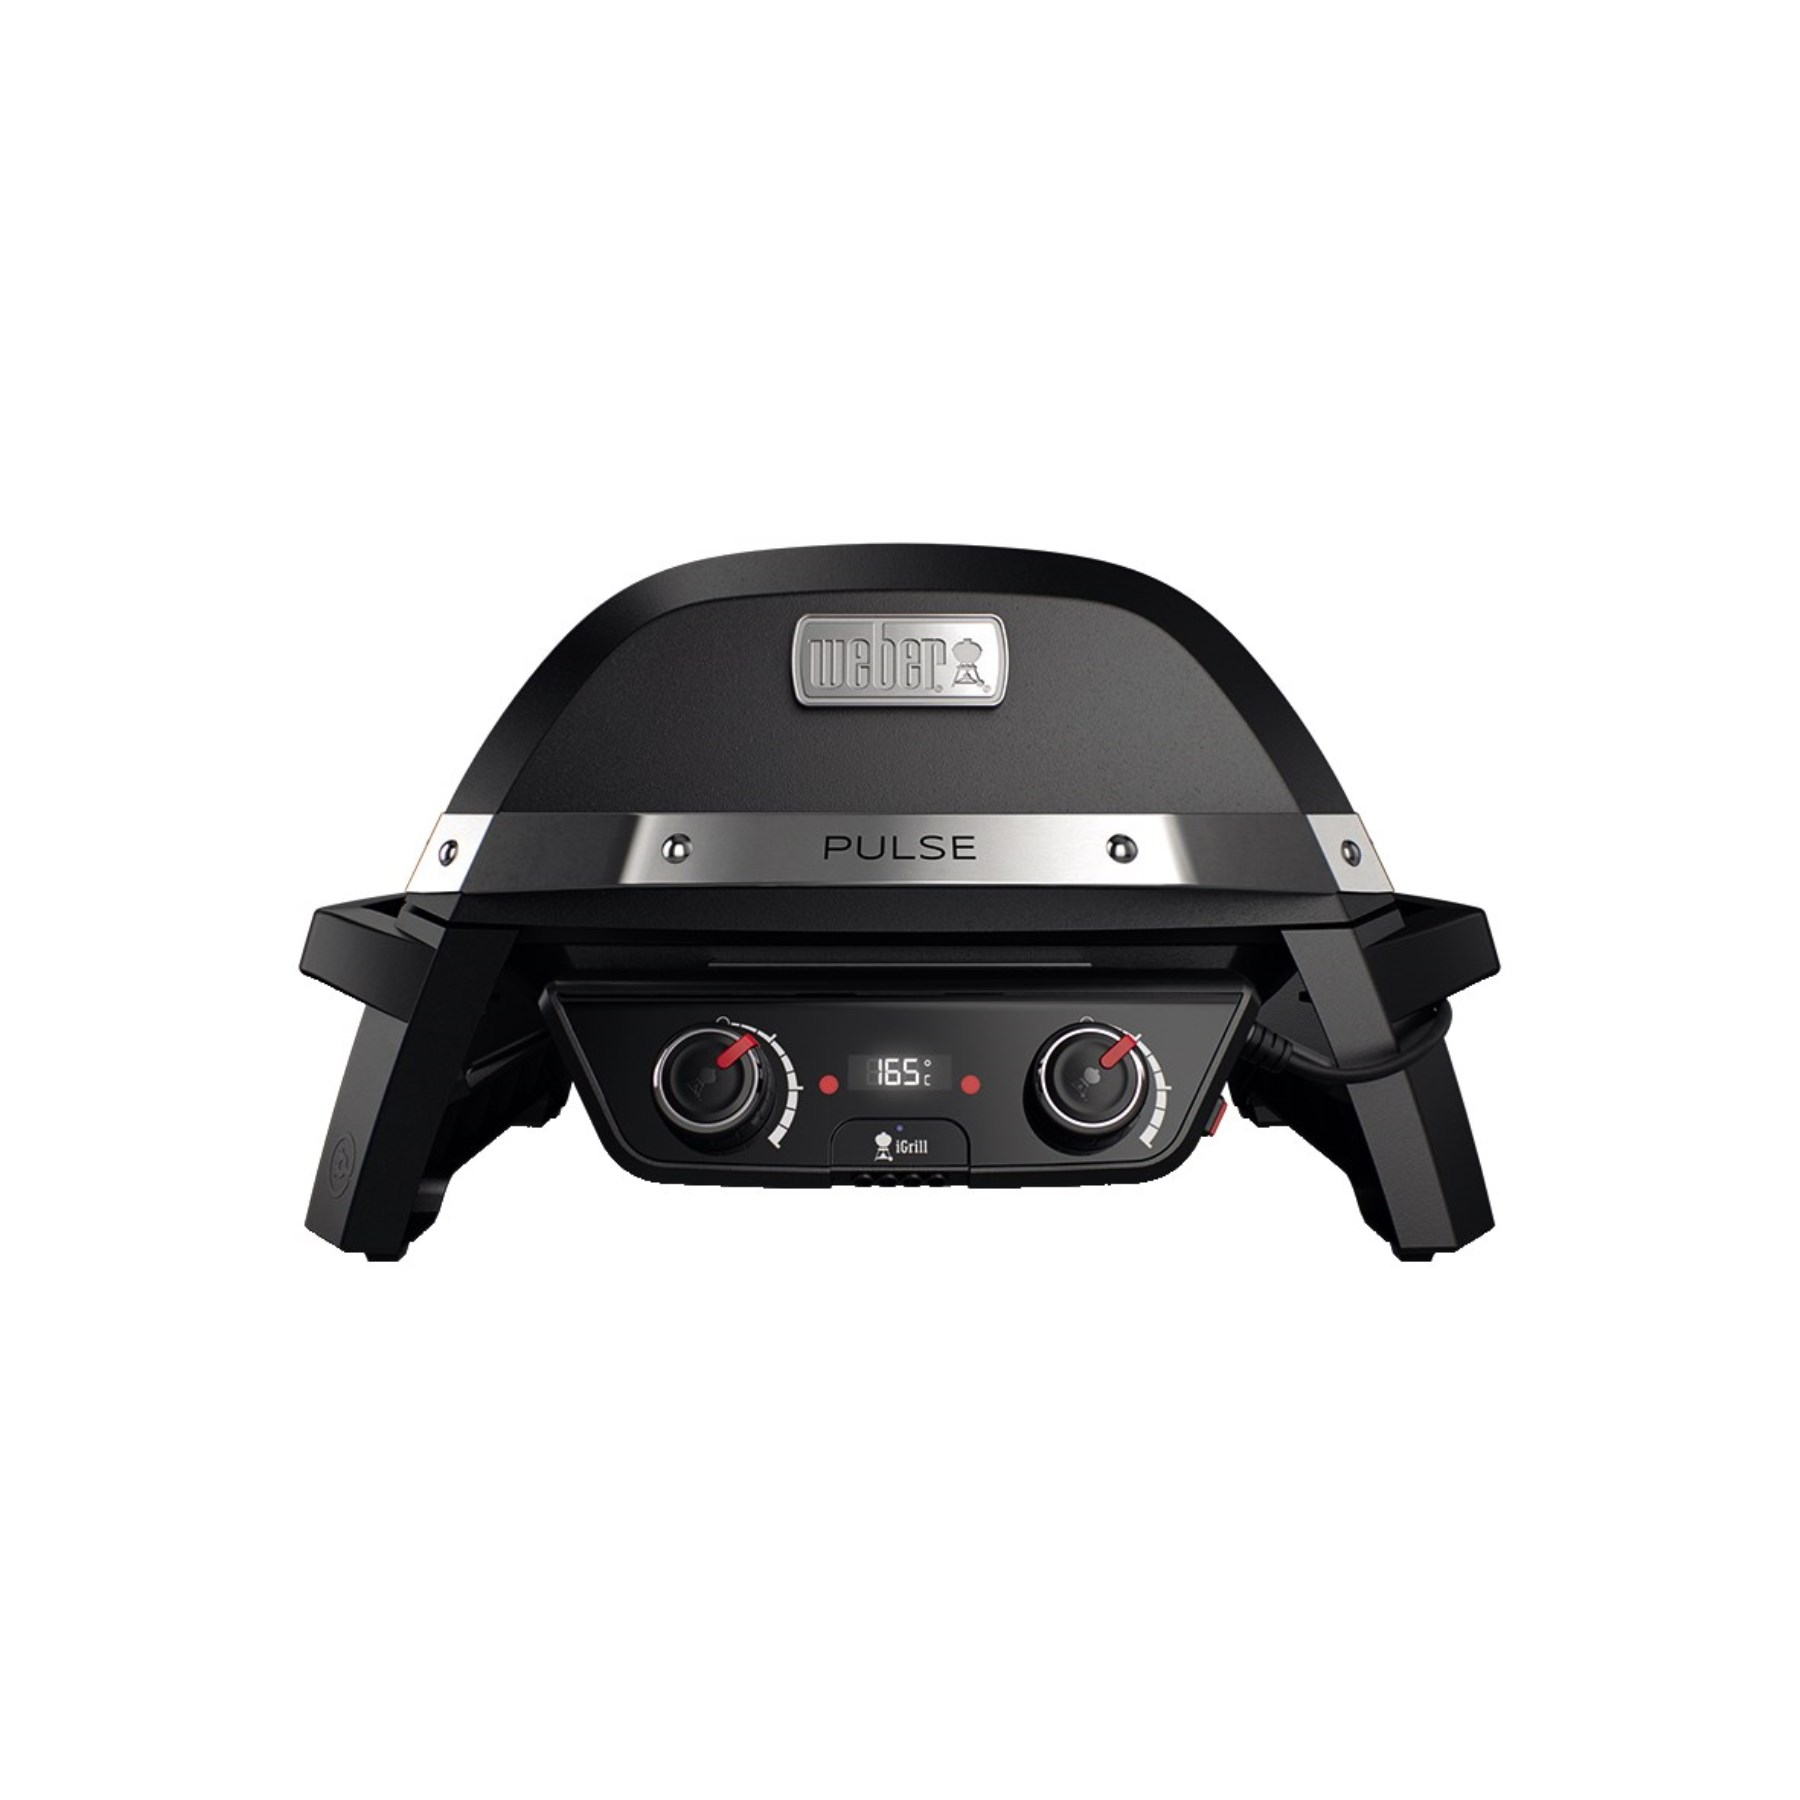 1239874 - Elektrogrill Pulse 2000, Black